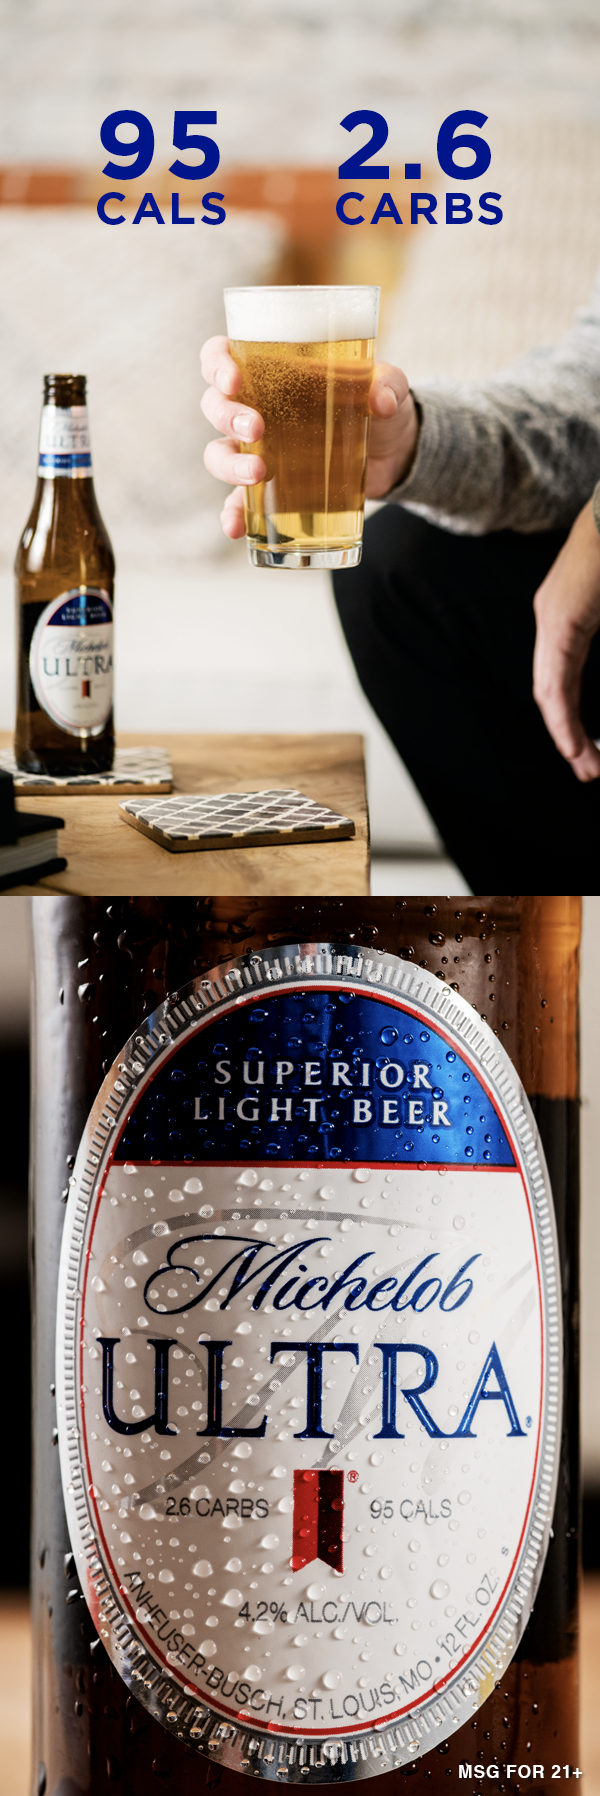 Seize A Crisp Refreshing End To The Day Michelob Ultra Carbs Diabetes Diet Plan